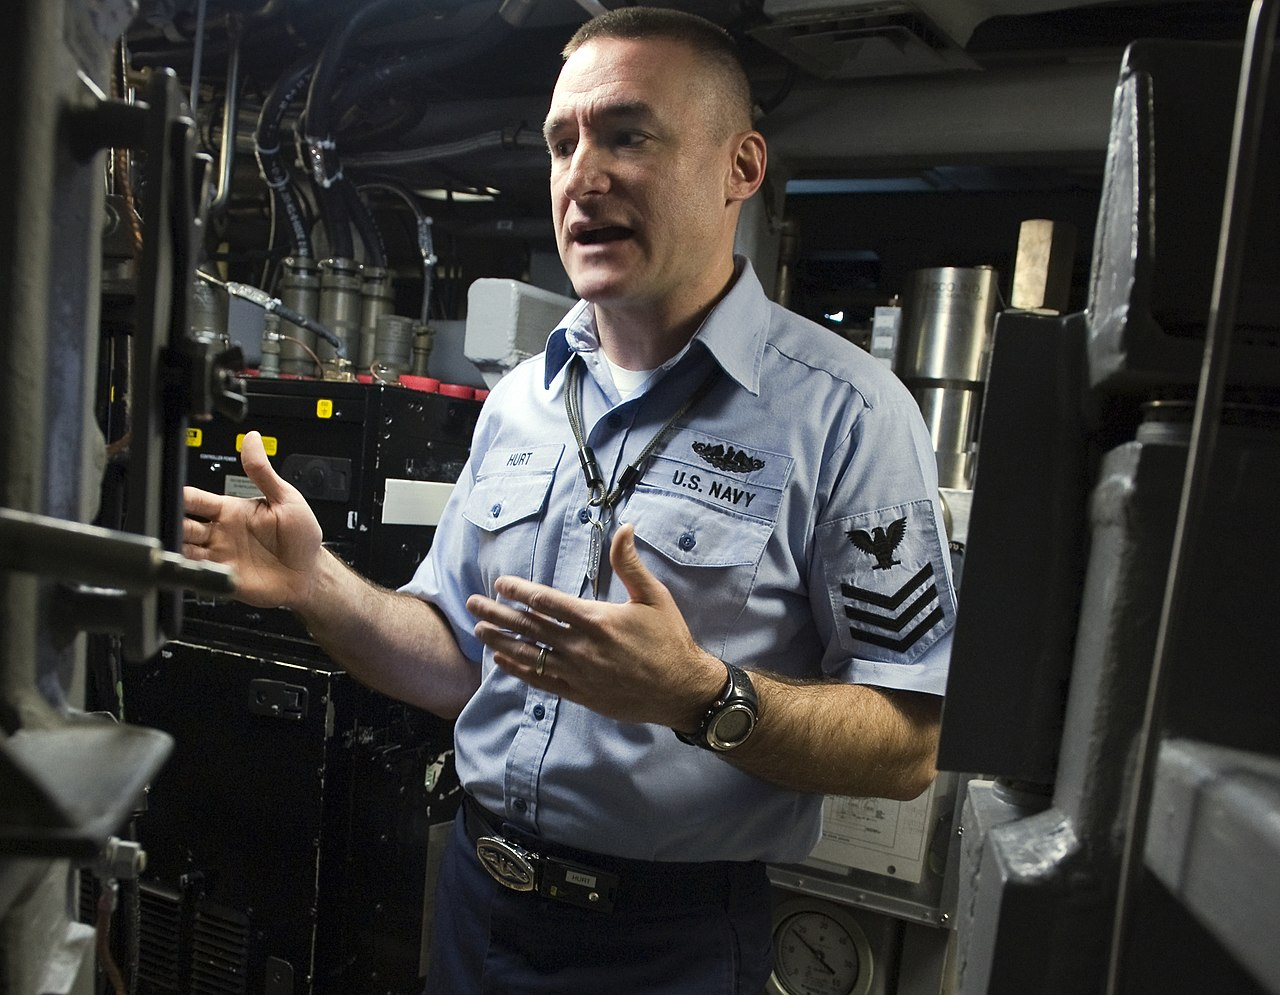 File:US Navy 090108-N-3333H-003 Machinist's Mate 1st Class Steven ...